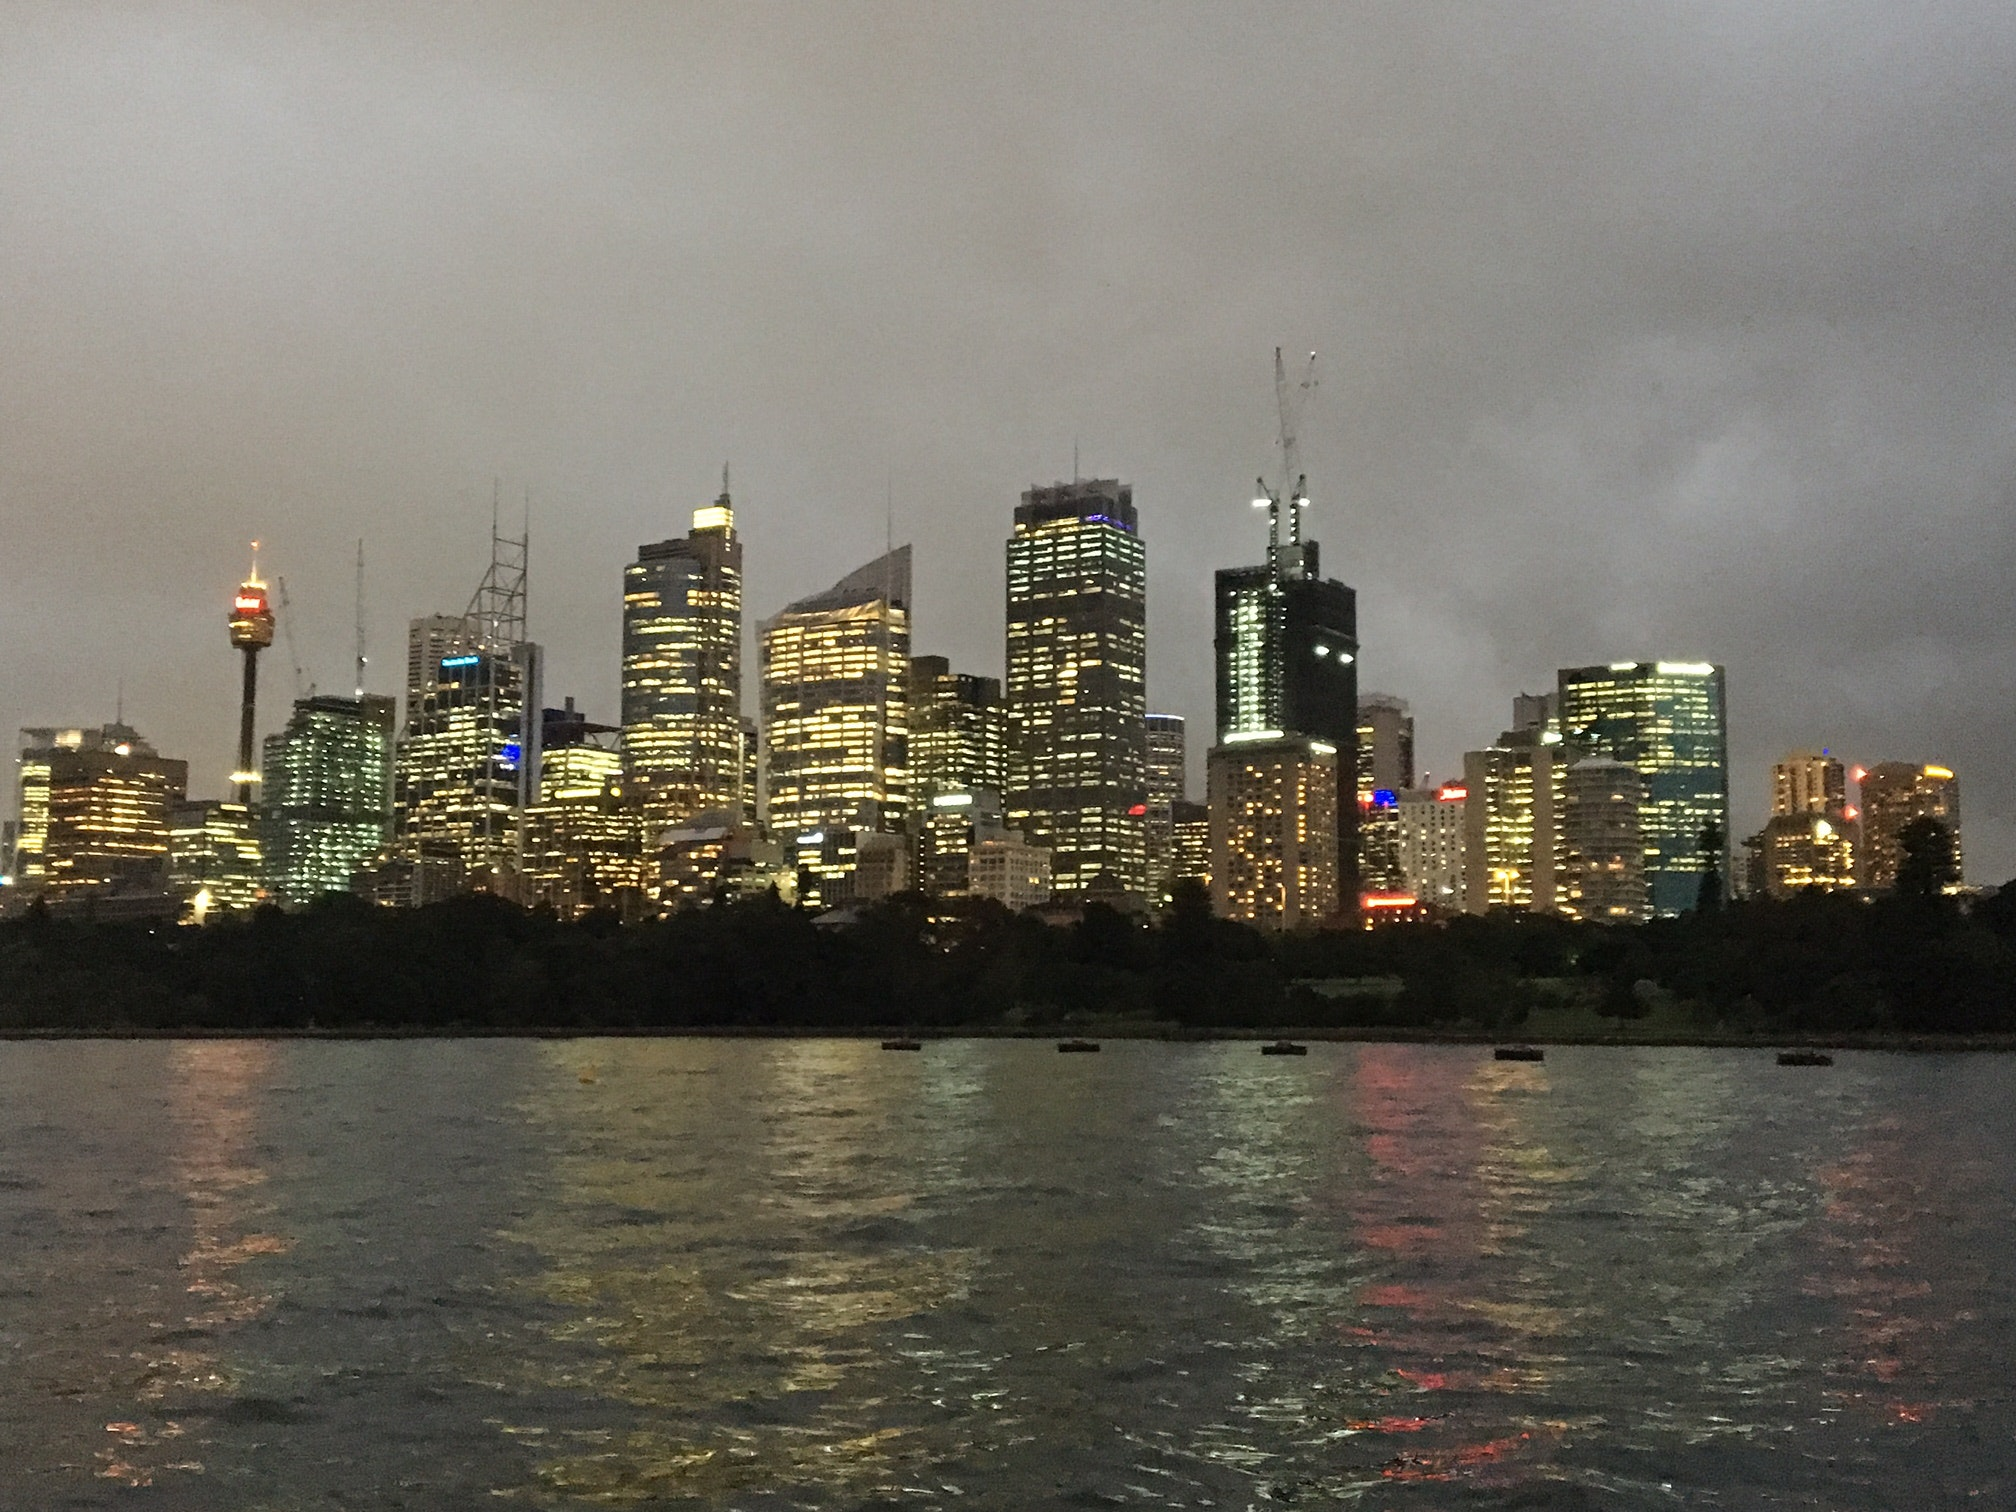 Reshaping Sydney by design –few know about the mandatory competitions, but we all see the results